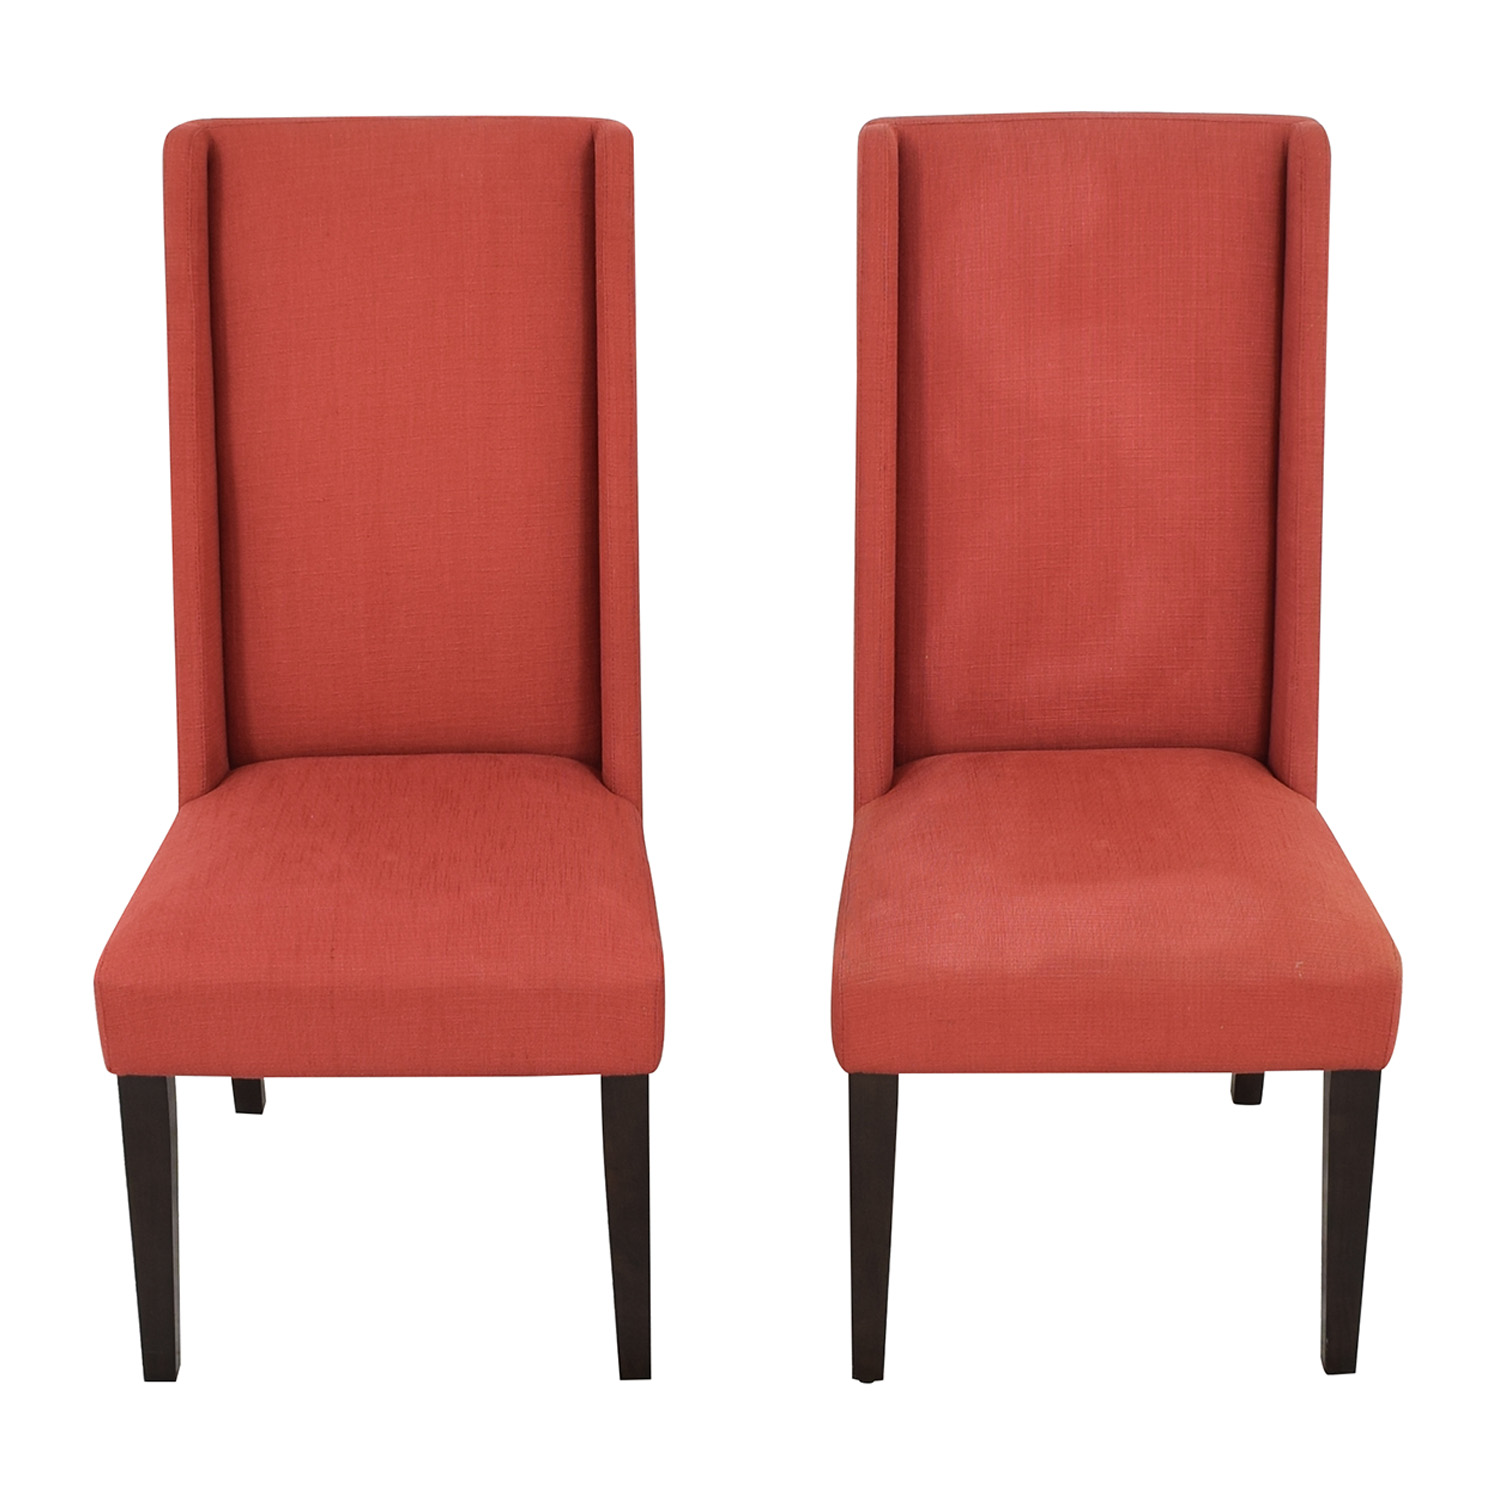 West Elm West Elm Willoughby Dining Chairs dimensions